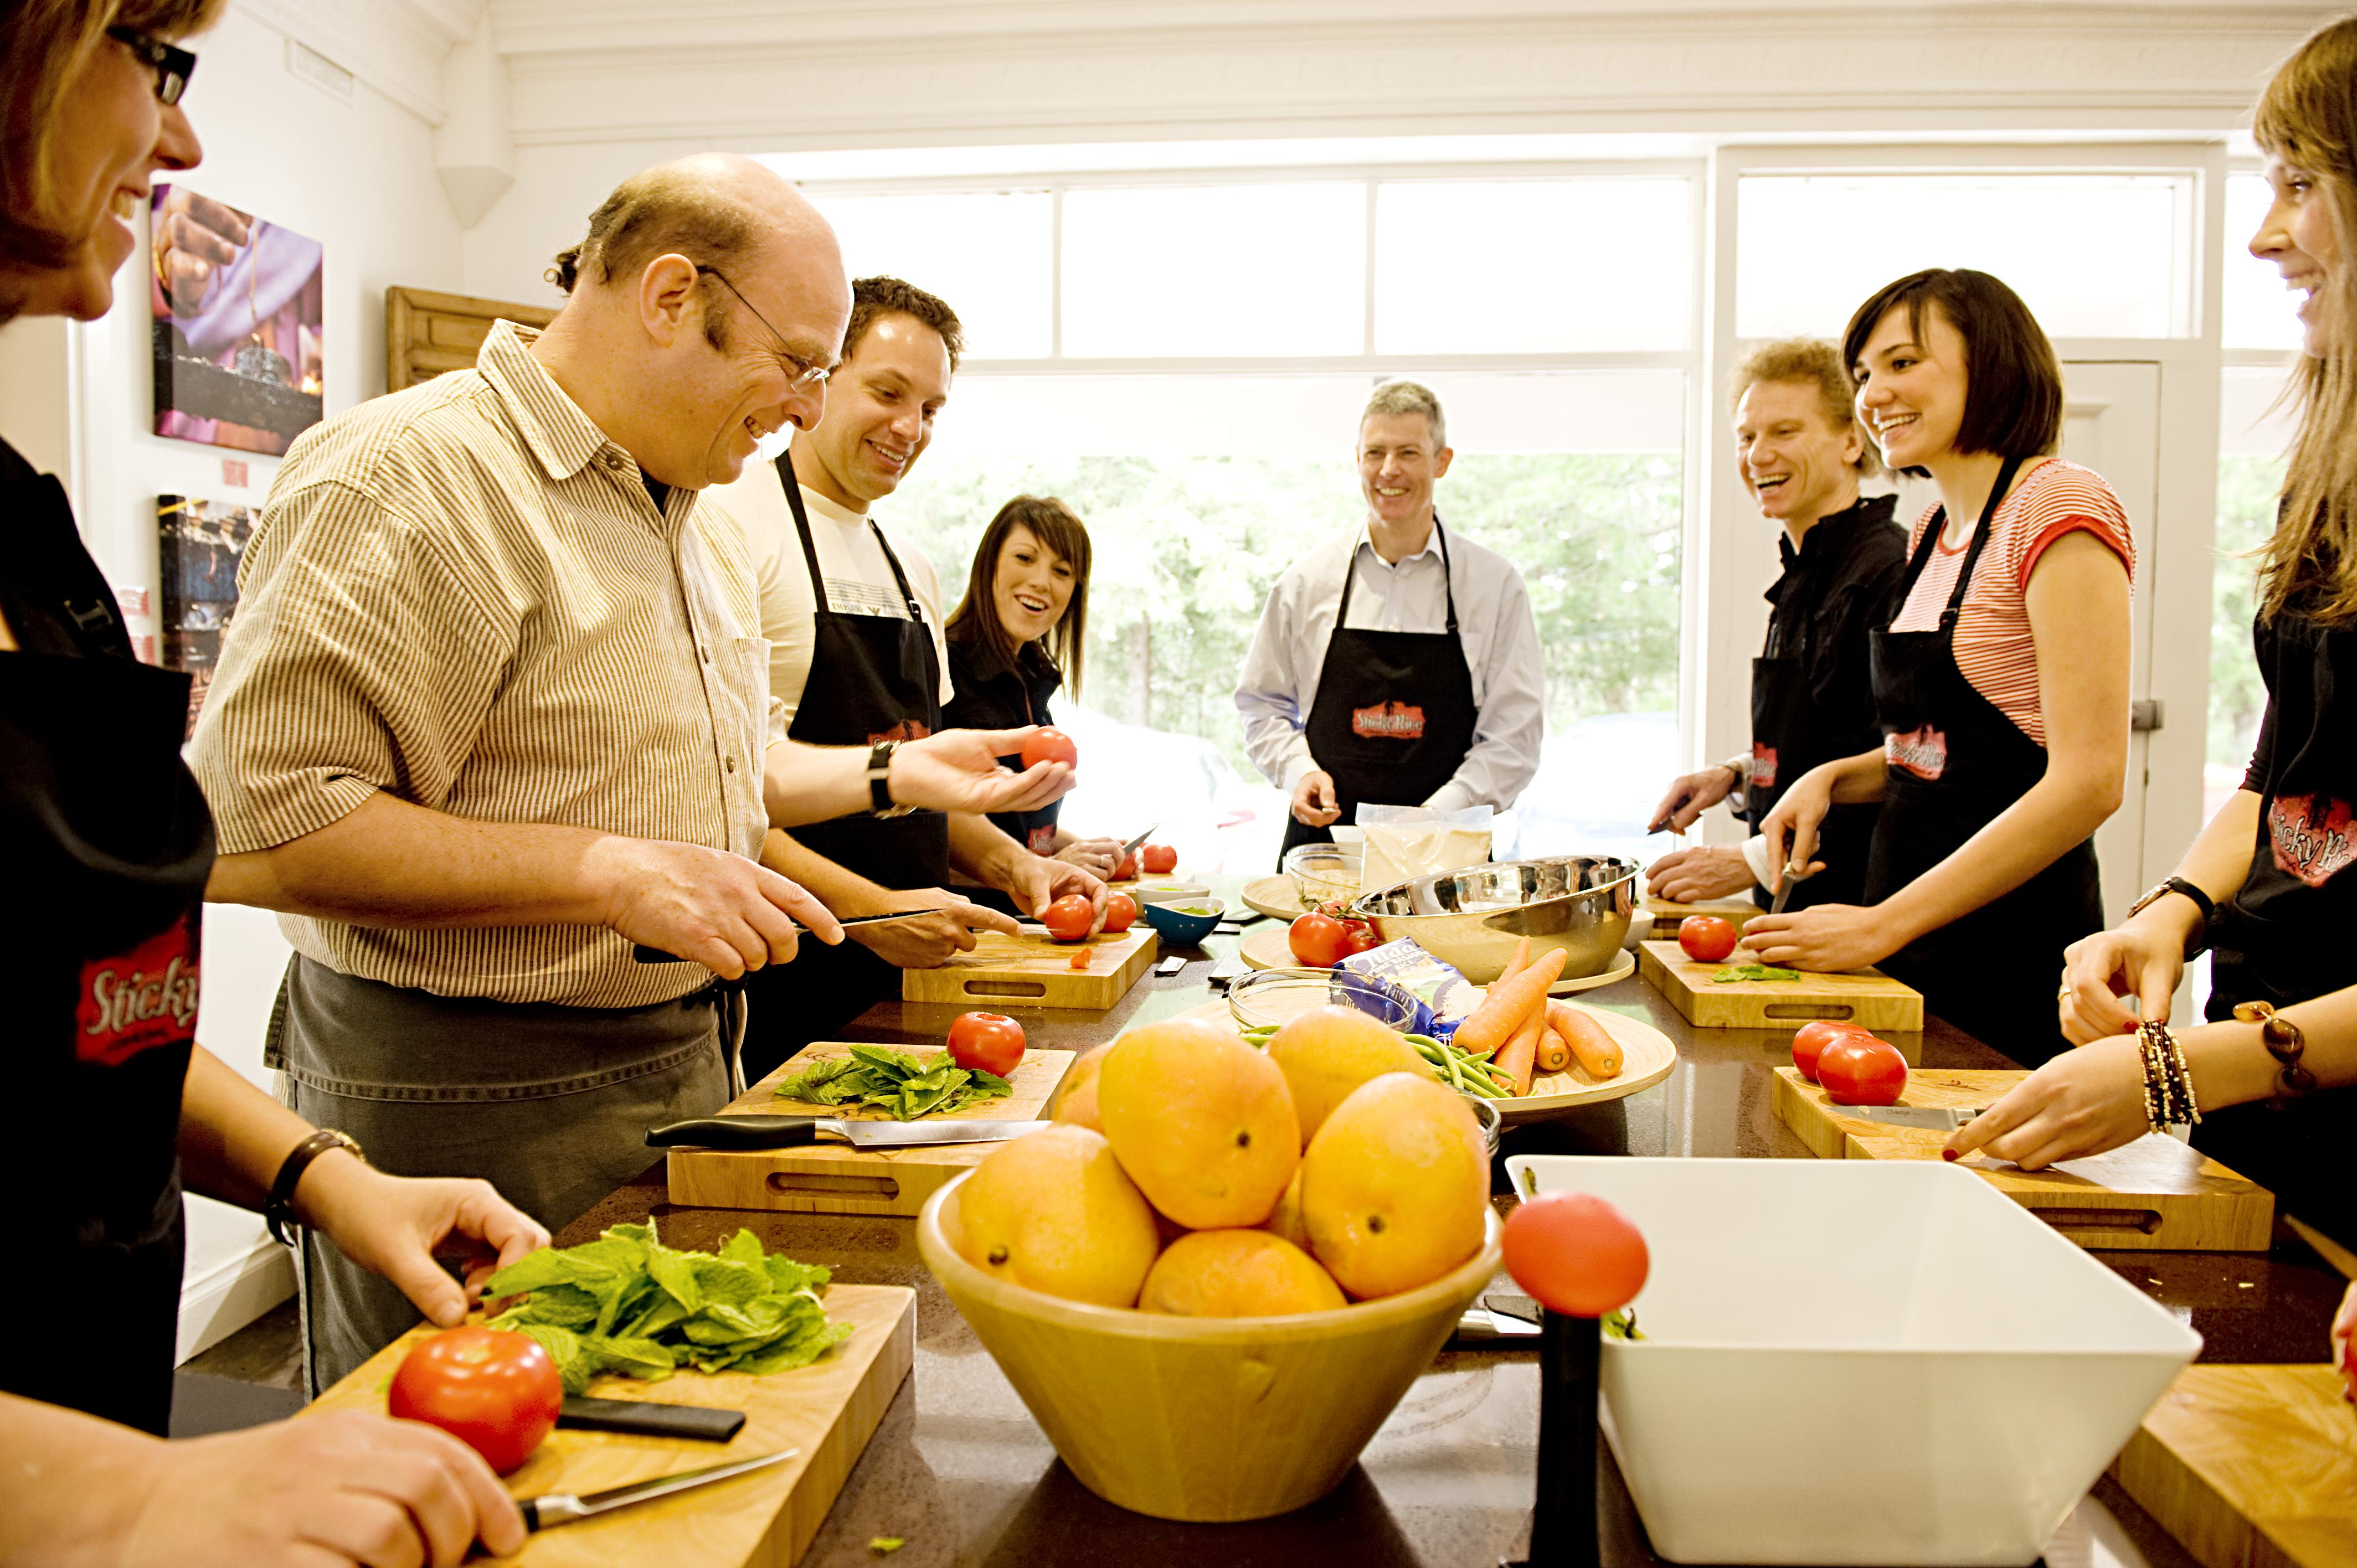 Sticky Rice Cooking School News » Events